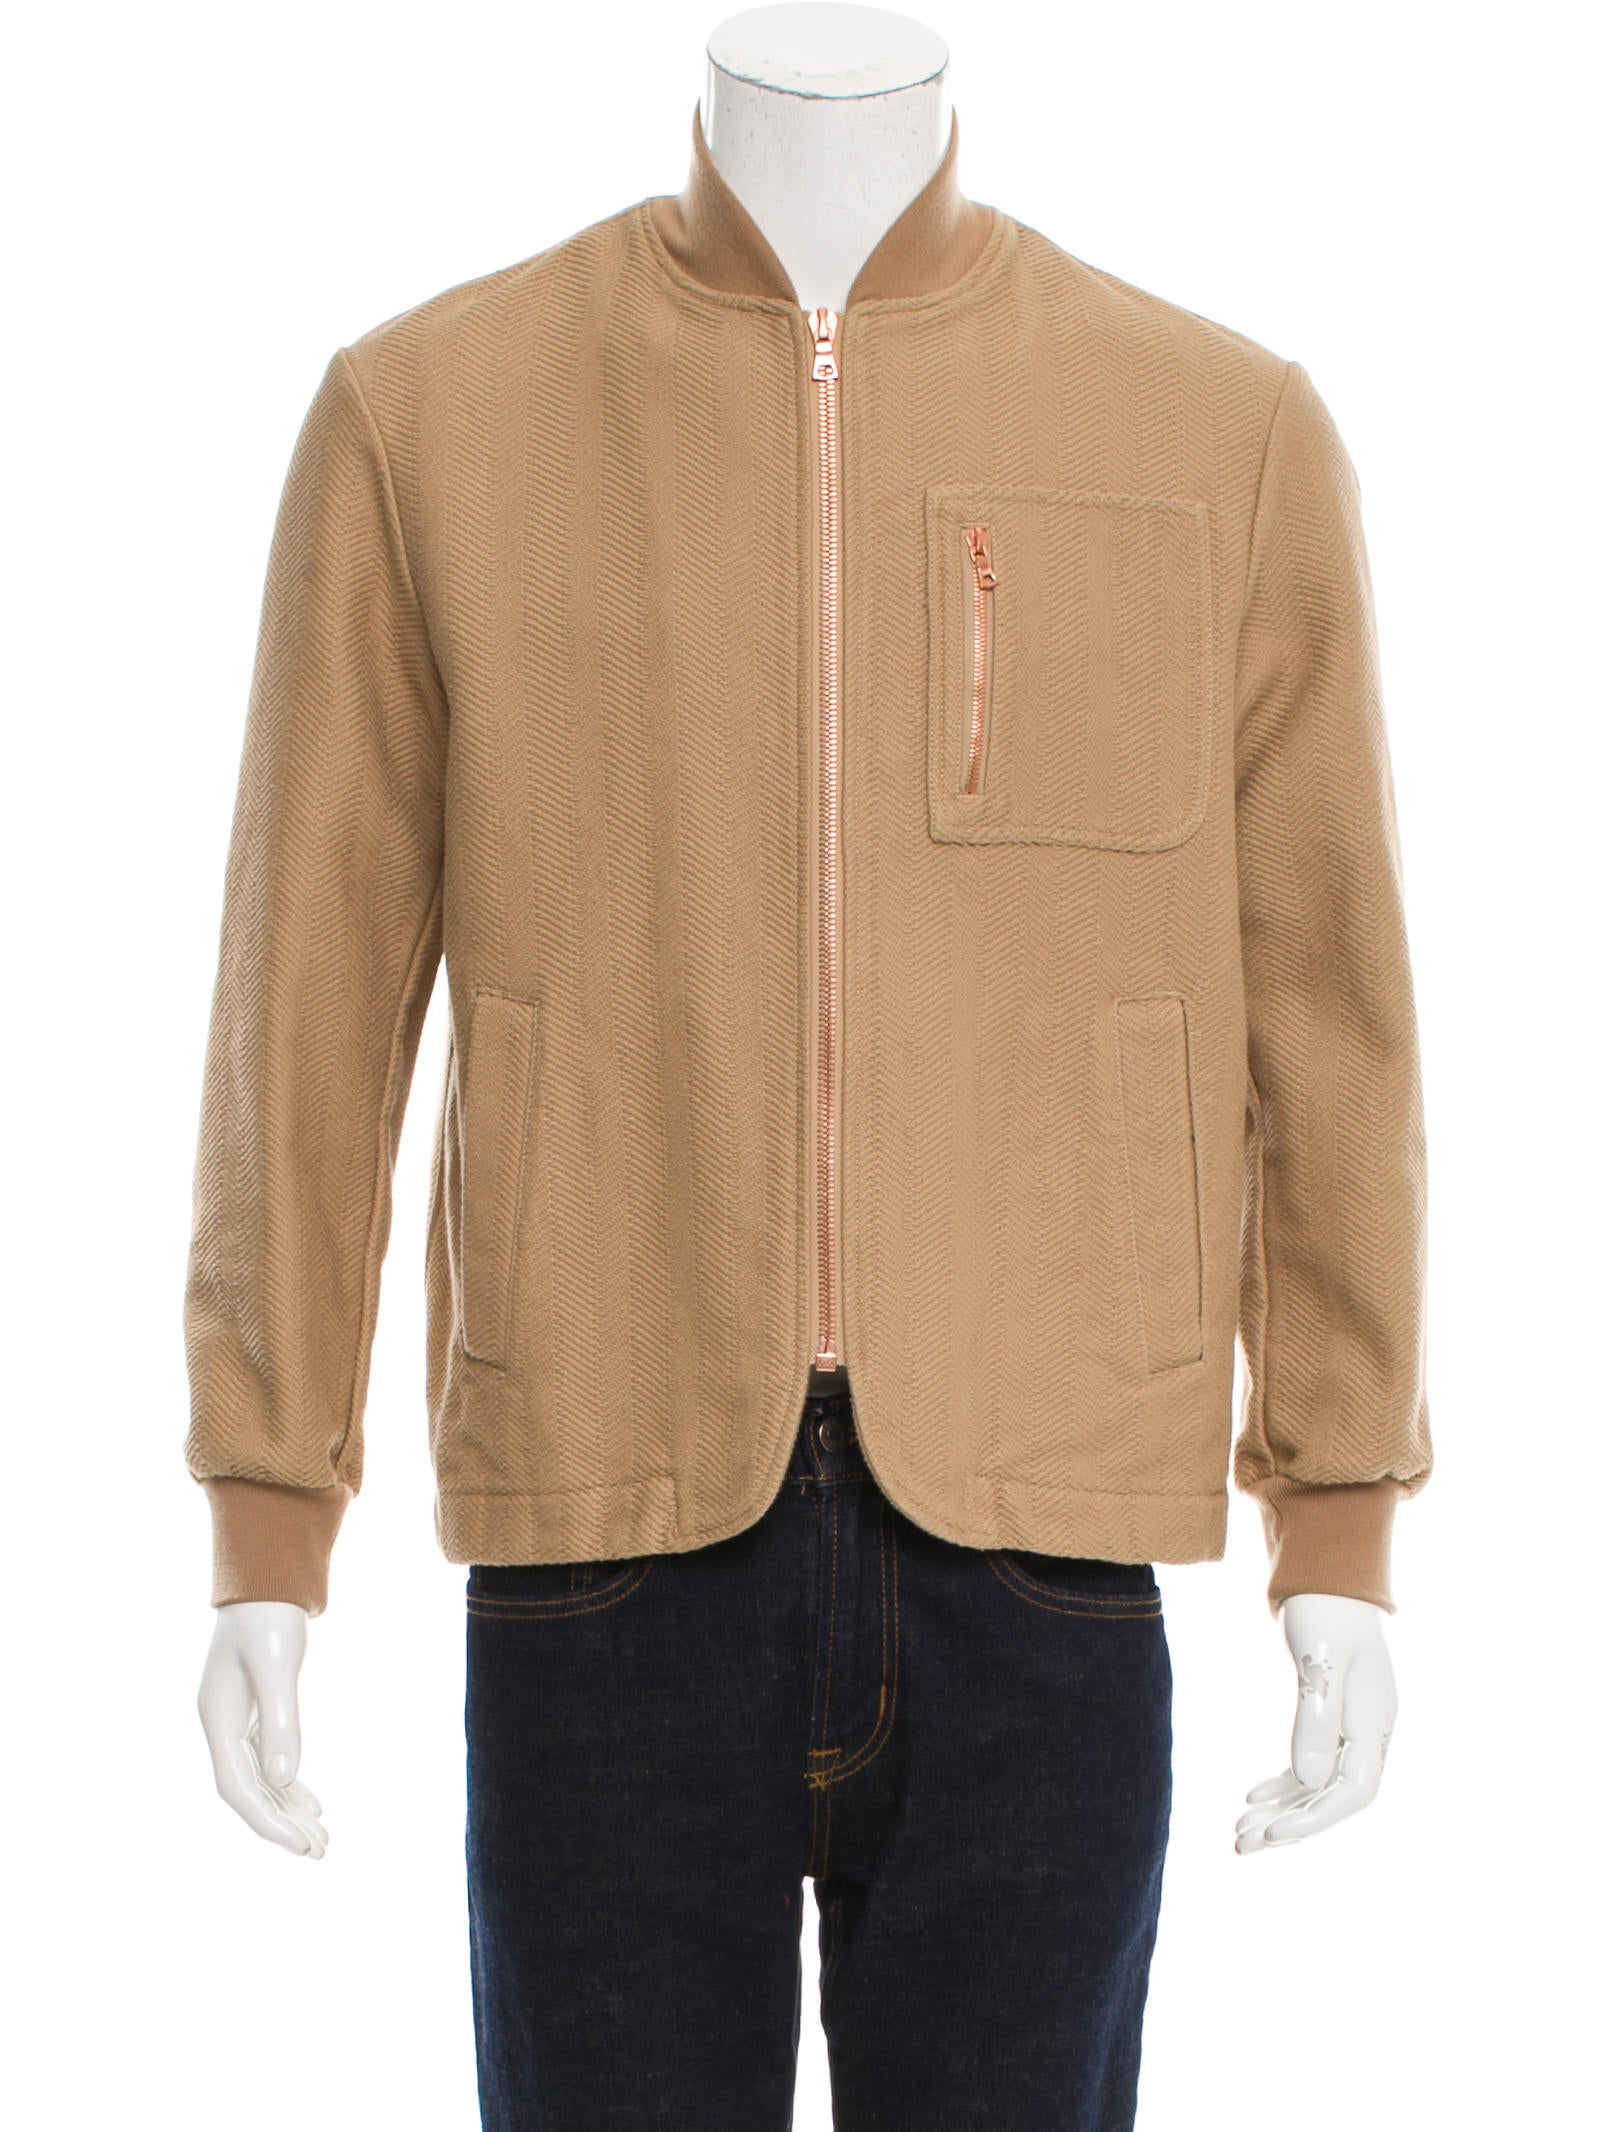 Doppiaa woven zip front jacket w tags clothing Woven t shirt tags